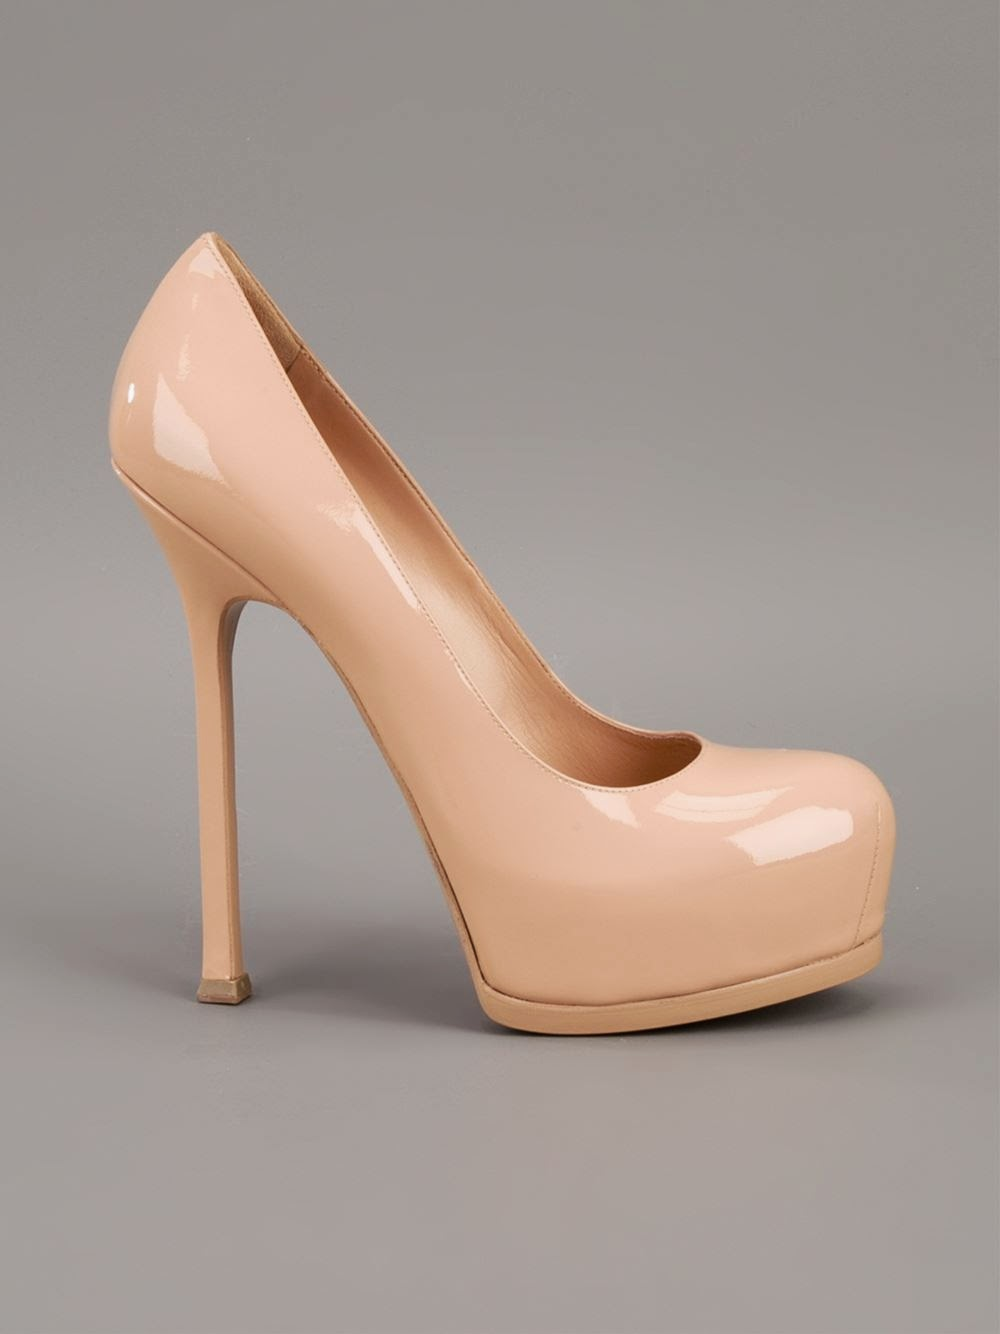 Yves Saint Laurent Tribtoo Patent Pumps prices for sale cheap really shopping online original JHz7gMuQ